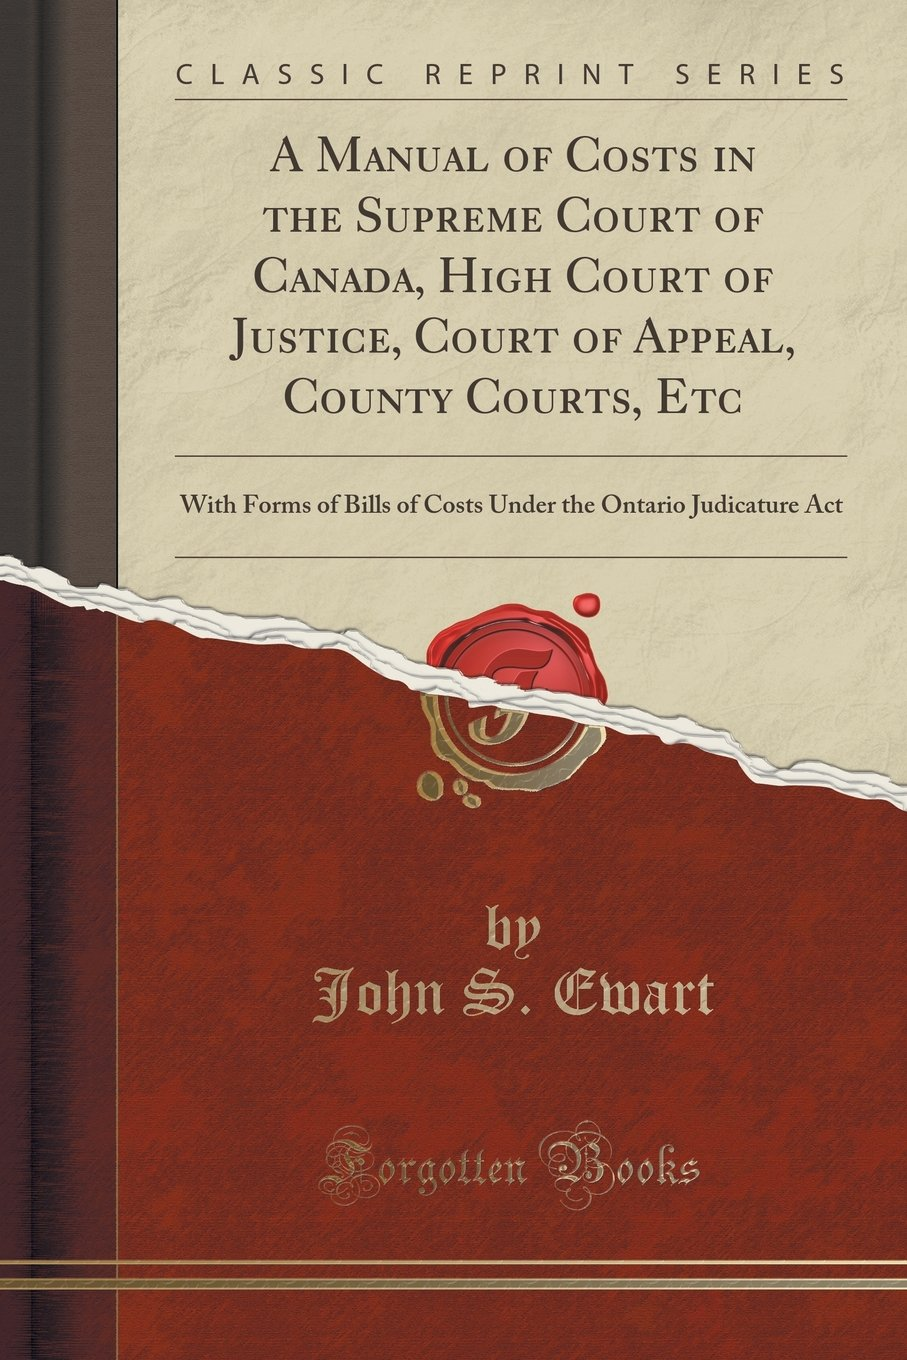 Read Online A Manual of Costs in the Supreme Court of Canada, High Court of Justice, Court of Appeal, County Courts, Etc: With Forms of Bills of Costs Under the Ontario Judicature Act (Classic Reprint) pdf epub